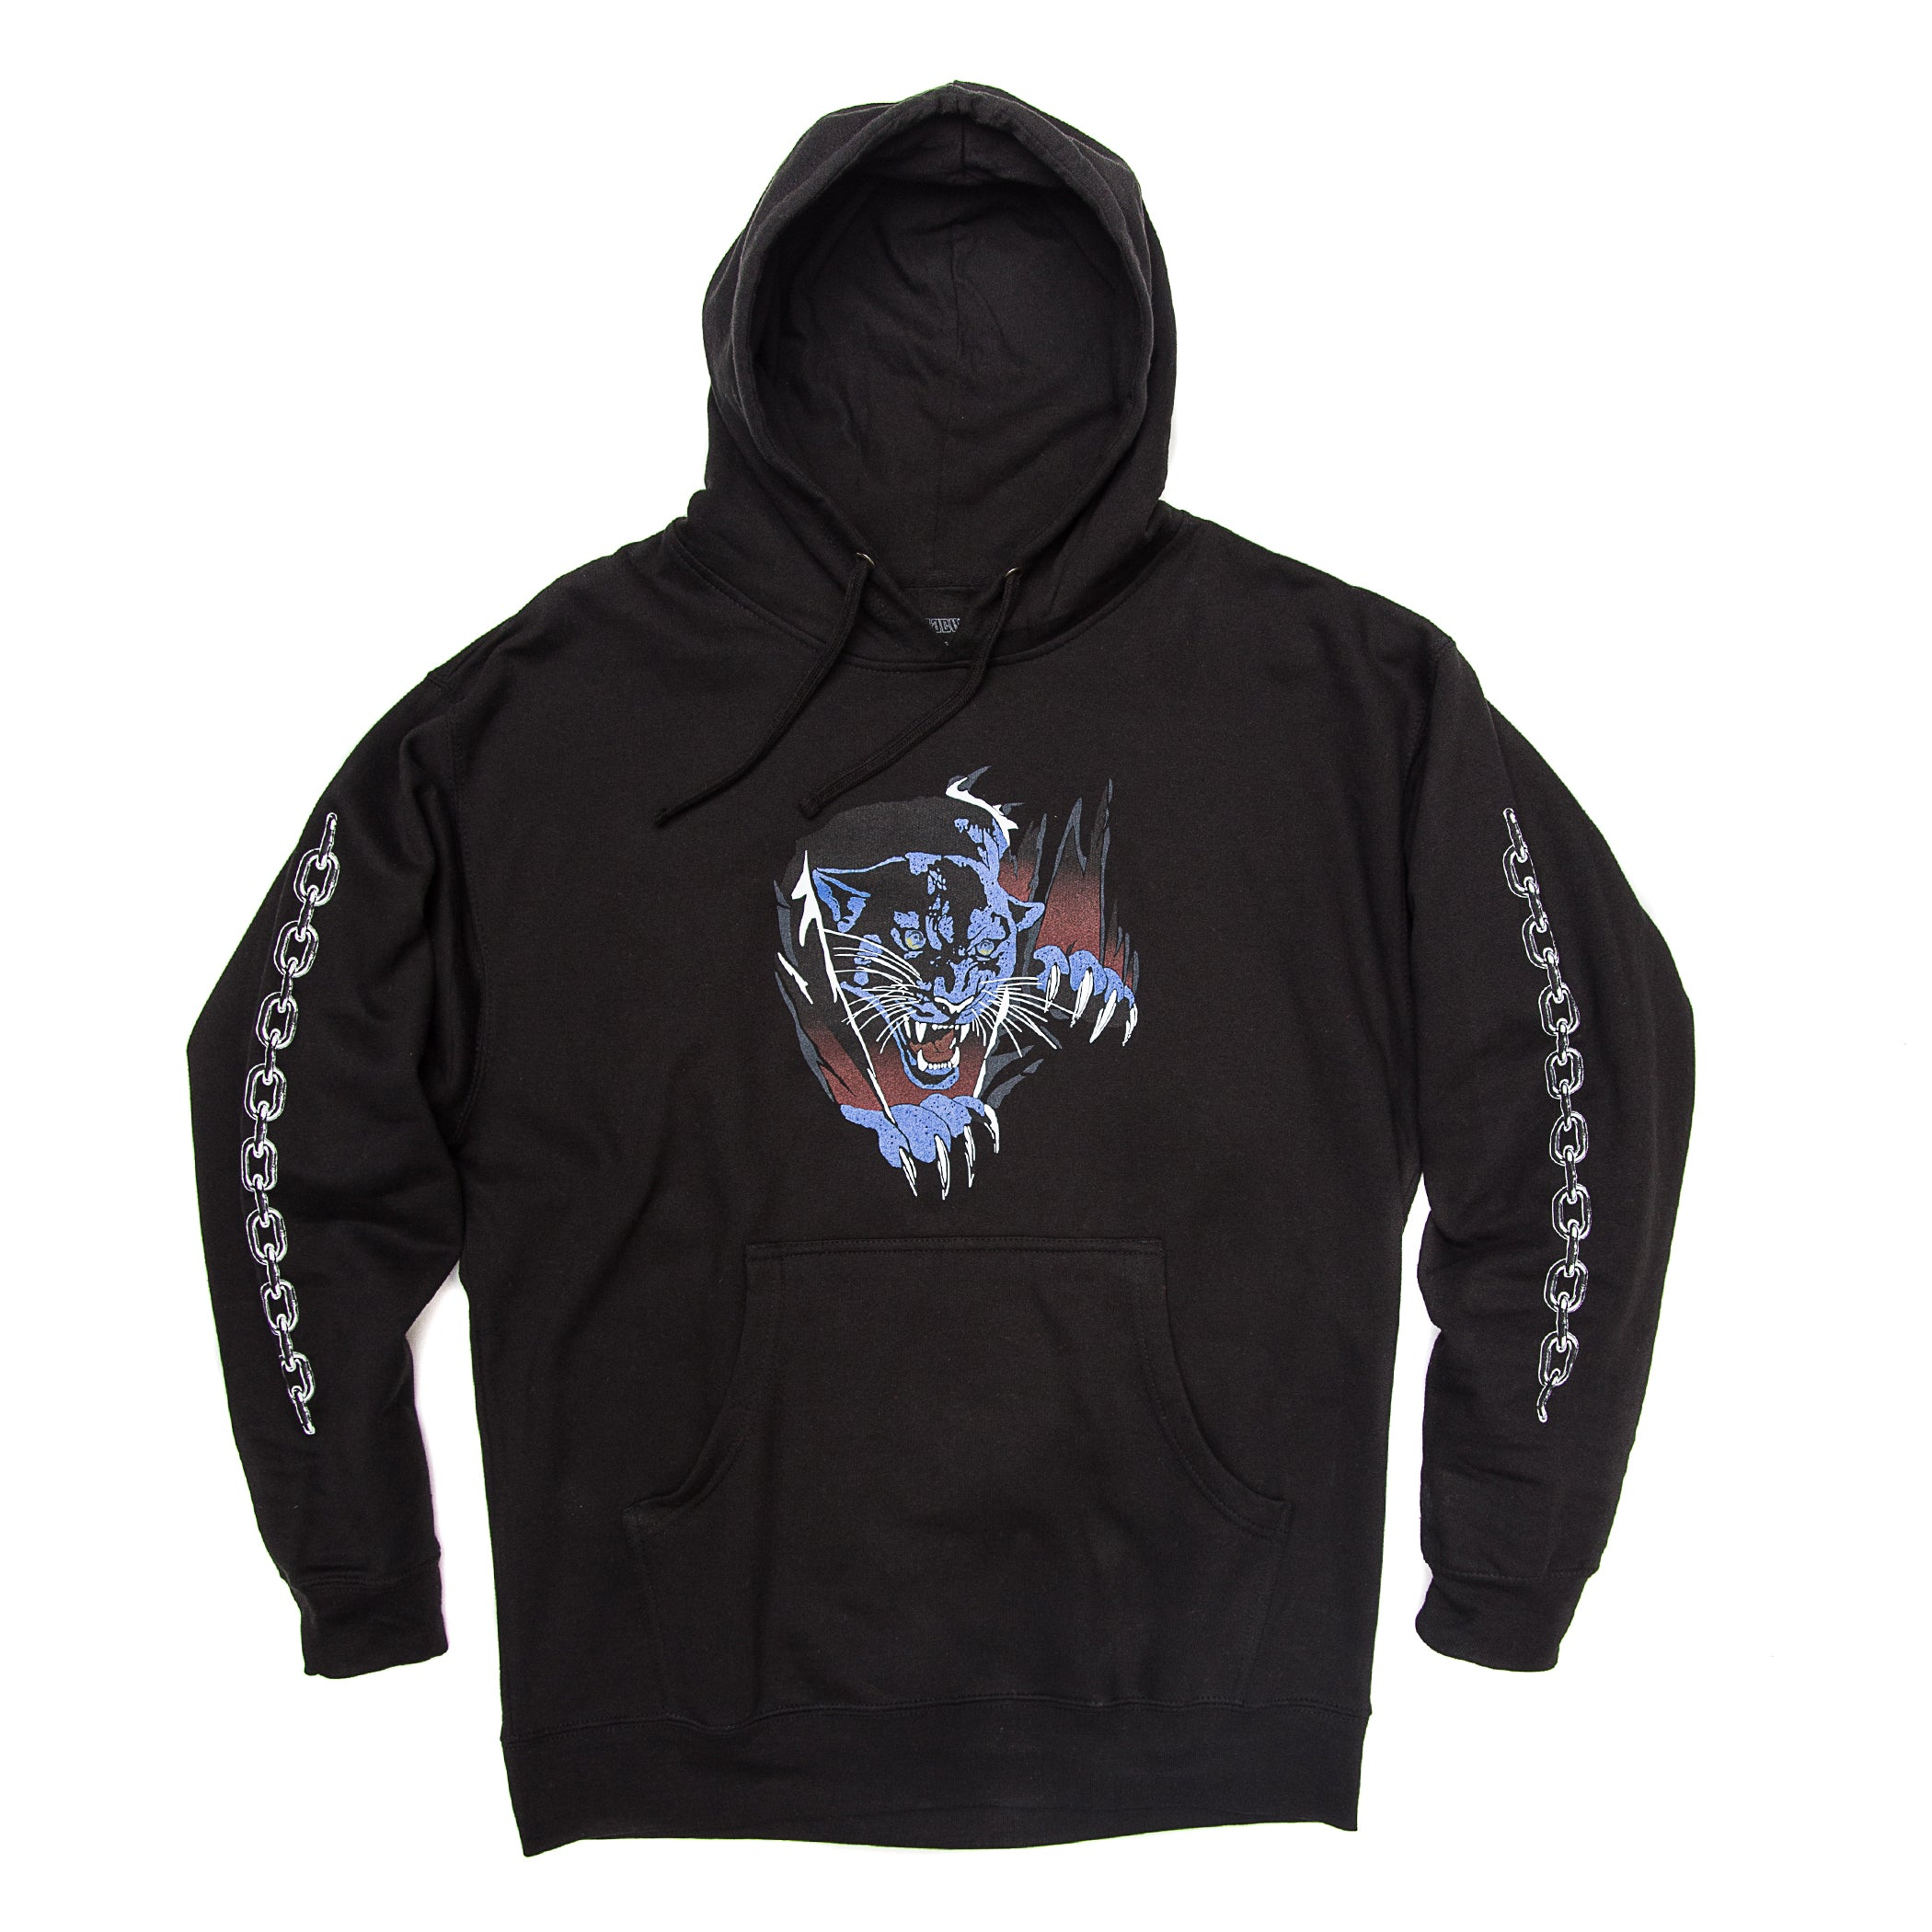 Bleached Goods - Off The Chain Hoodie